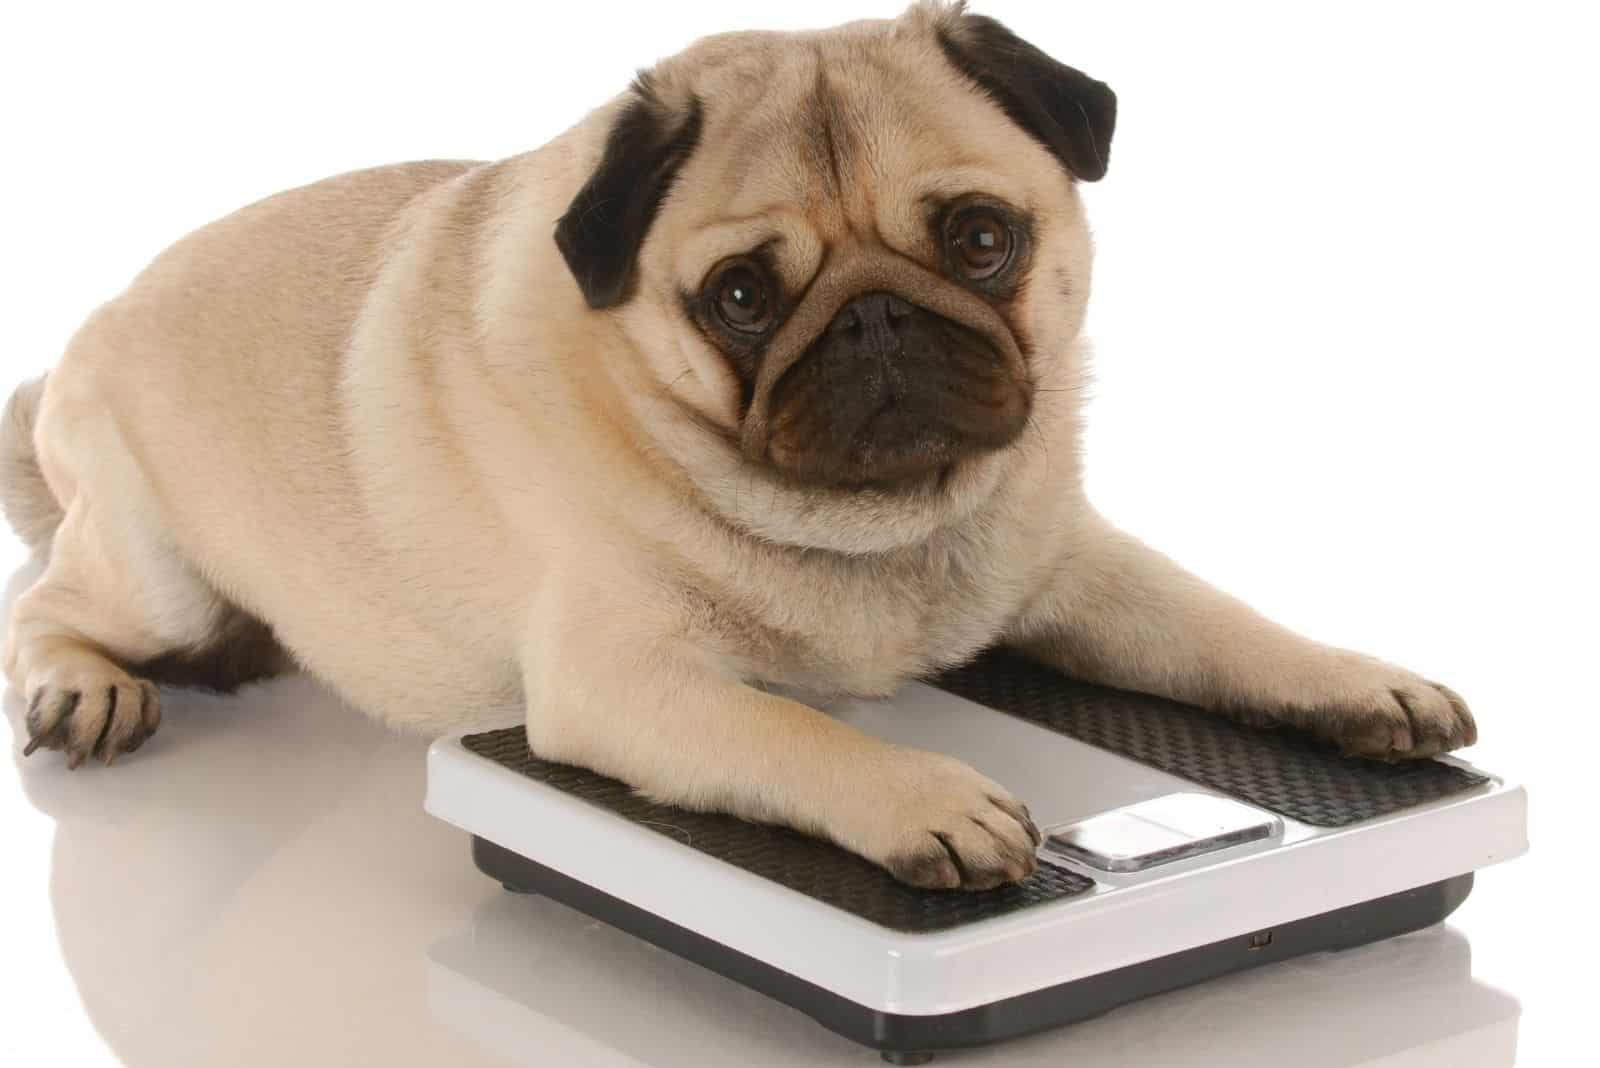 cute pug dog lying down on the weighing scale